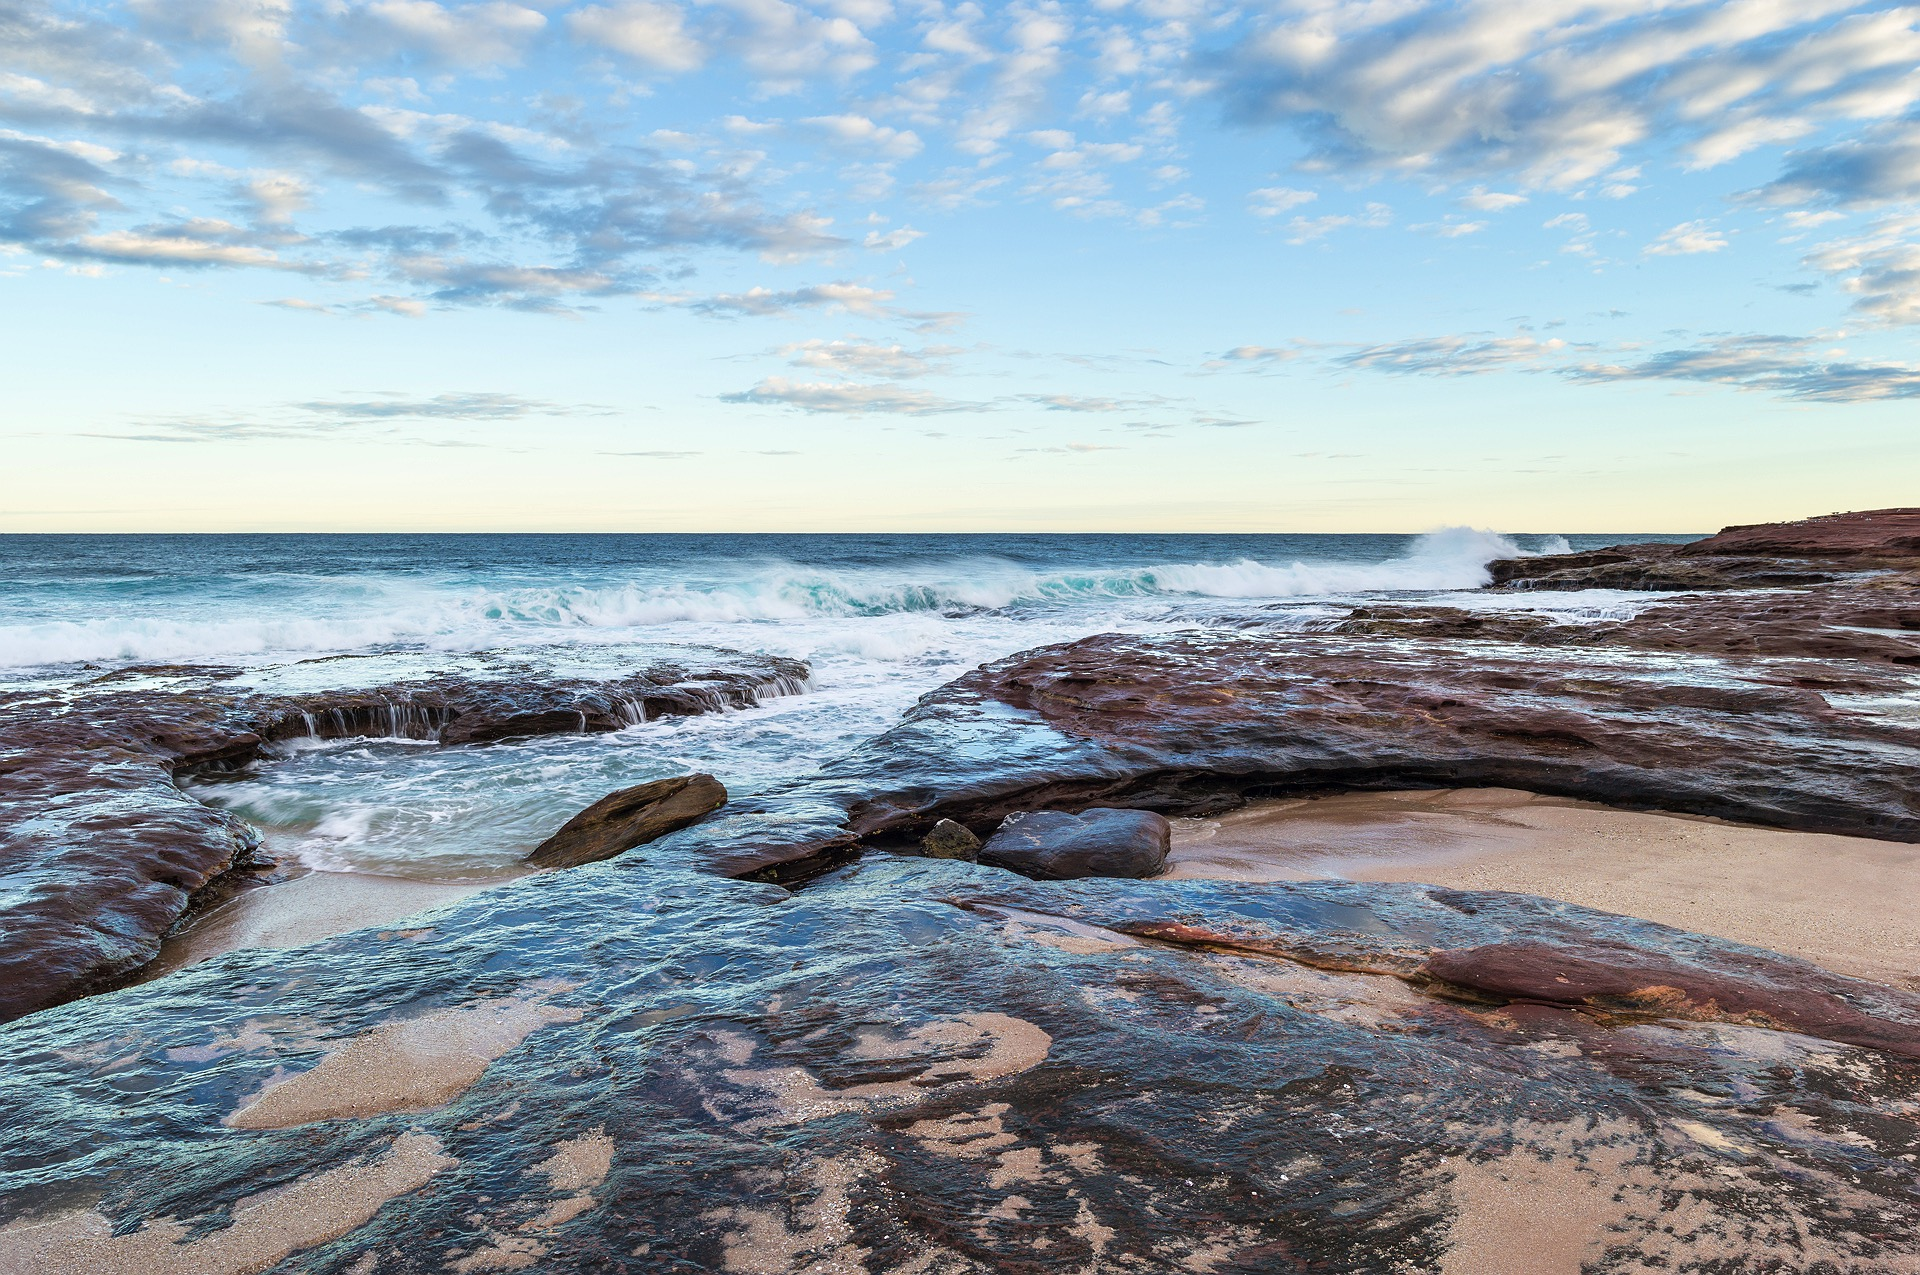 kalbarri_coastal_cliffs_05